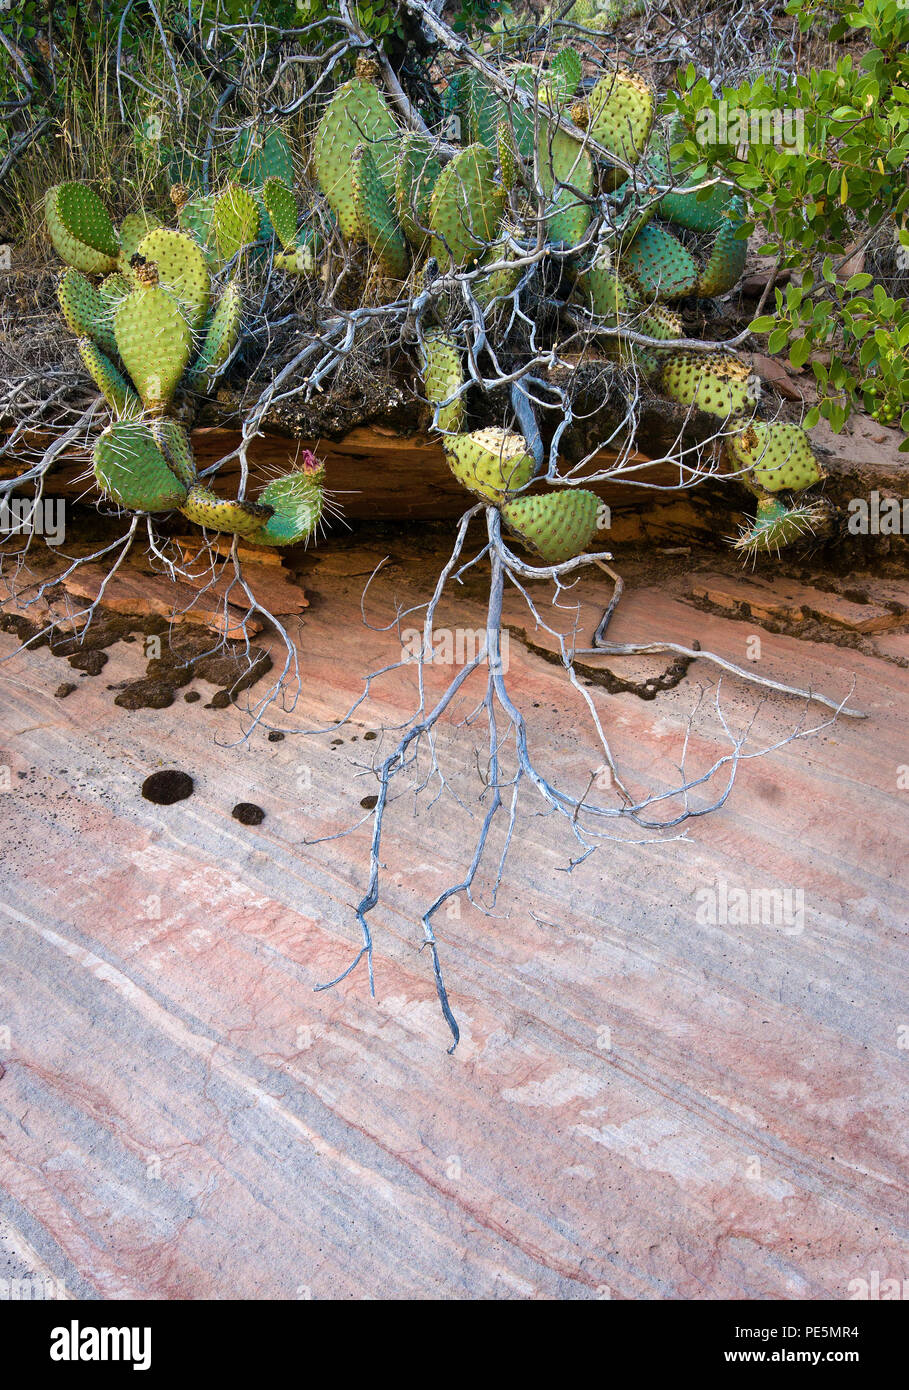 Cactus and tree branches against pink sandstone, Zion National Park, Utah, the United States - Stock Image